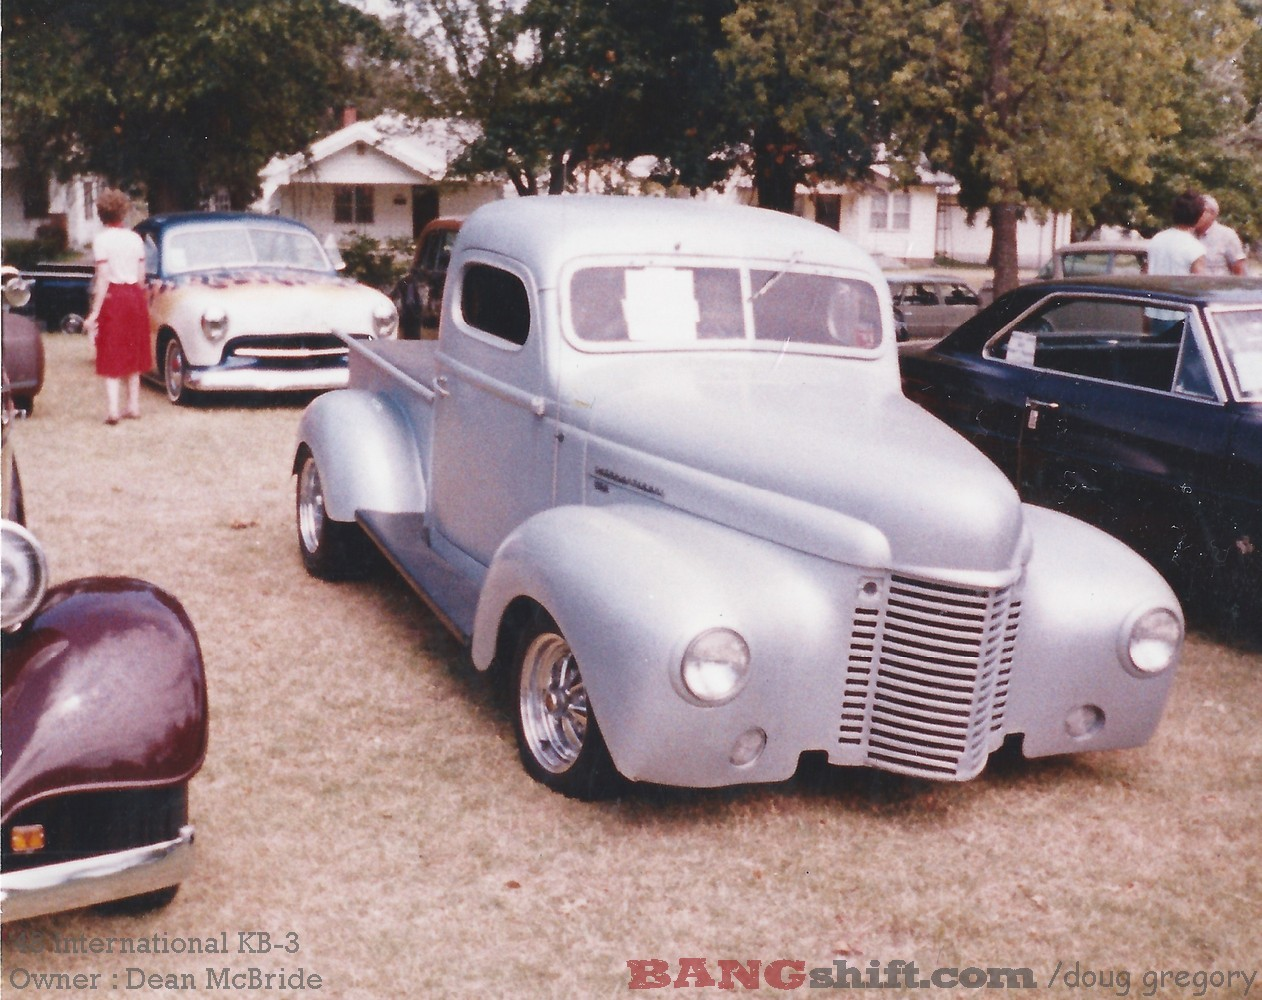 Hot Rod Time Machine: Great Photos From The 1980s At An Oklahoma Car Show – Fat Fenders Rule!